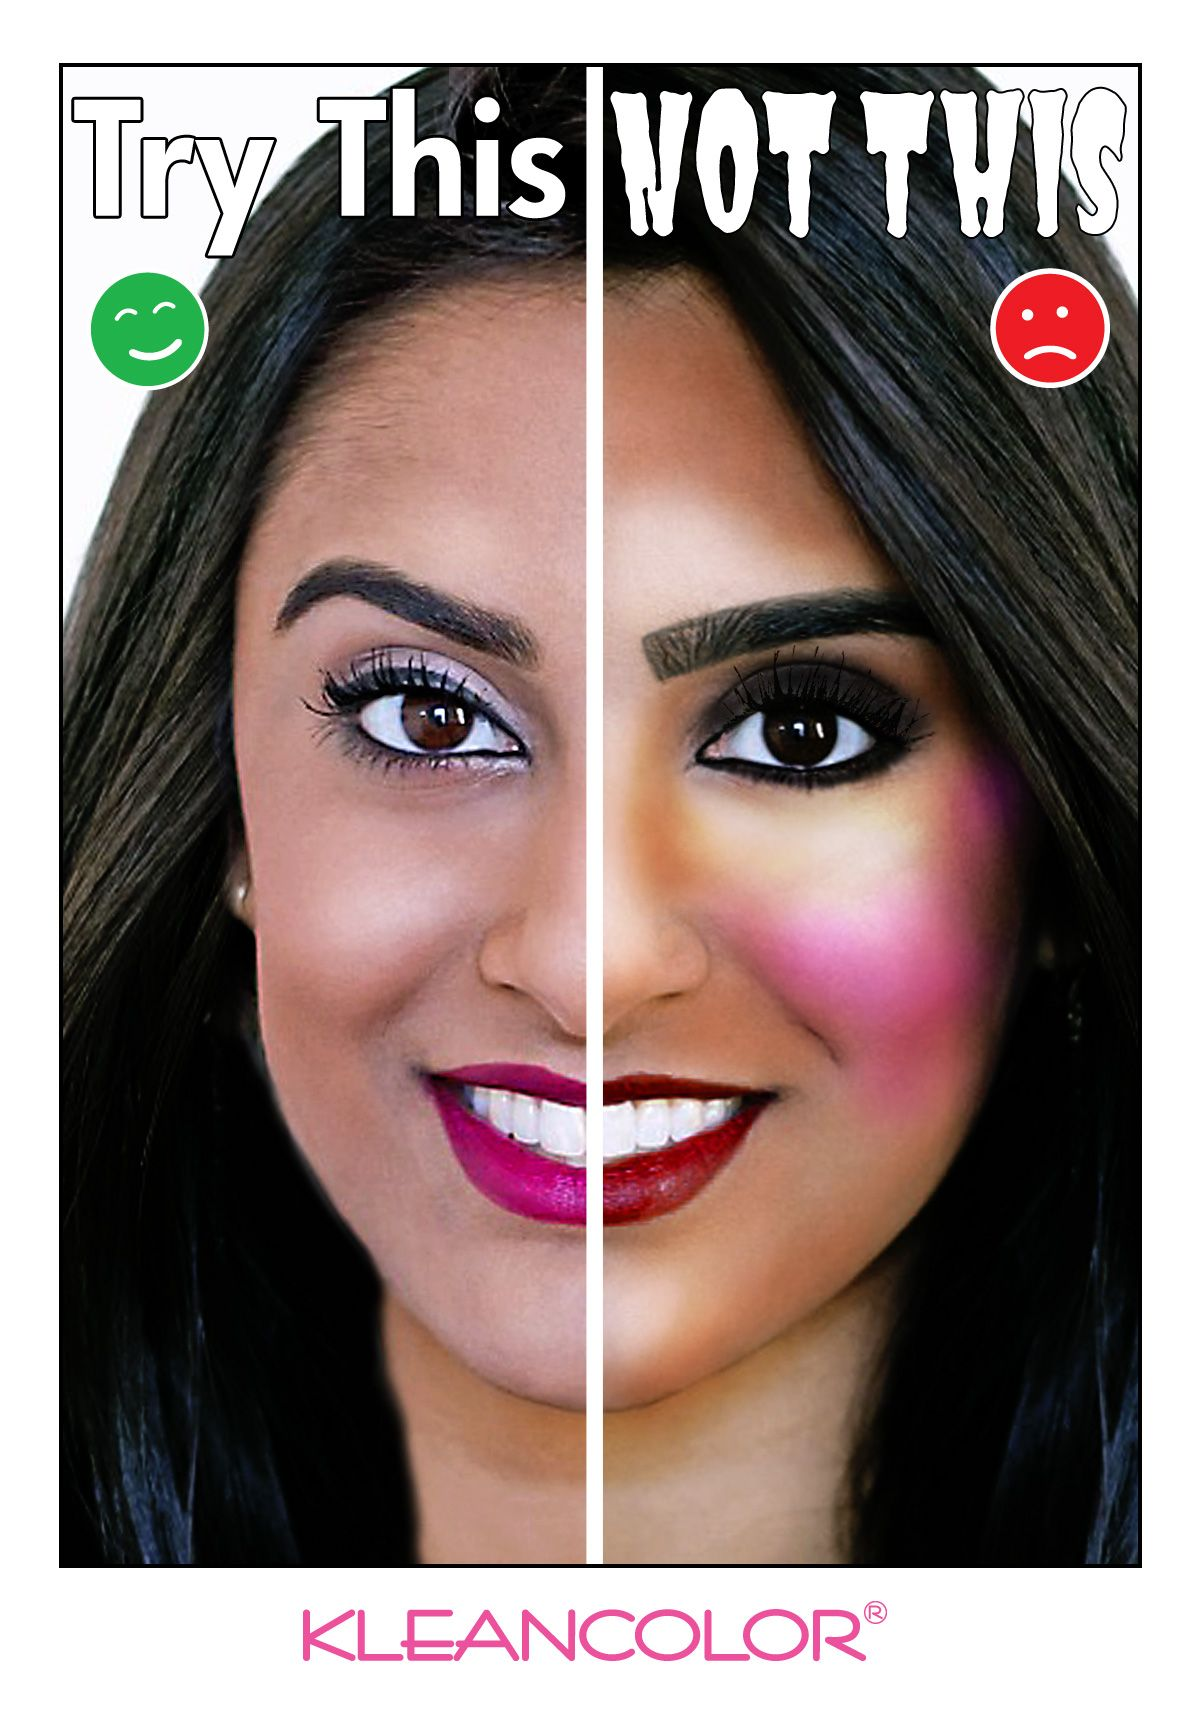 f1ce9722e93 When it comes to makeup, sometimes less is more. For a simple, fresh ...